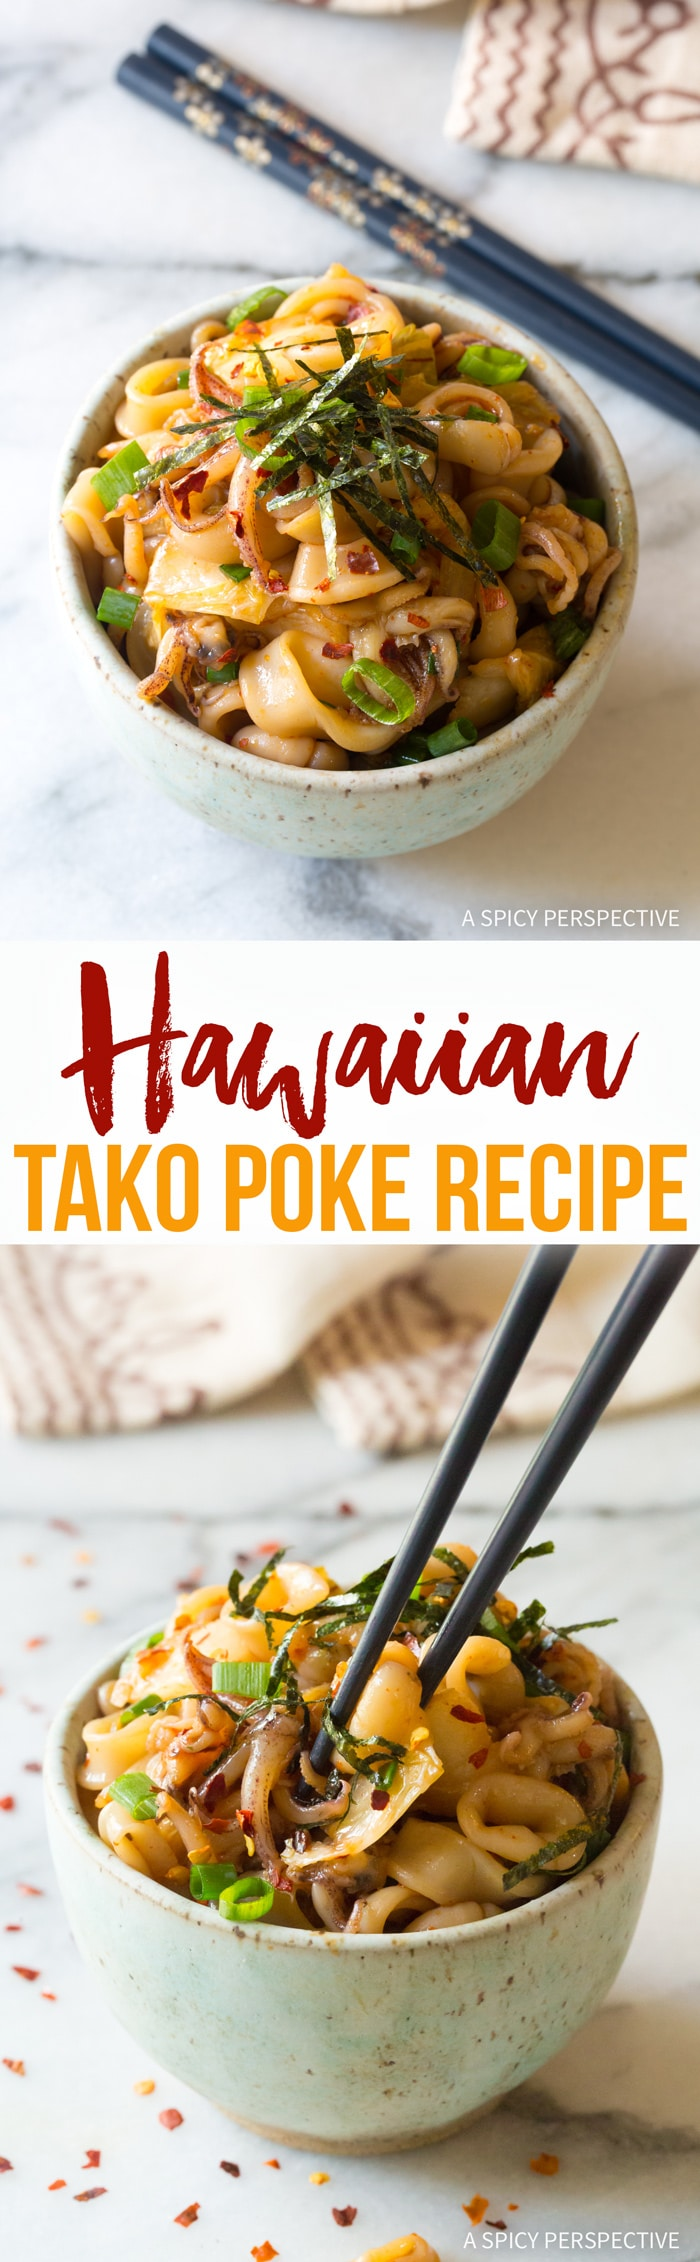 Amazing Hawaiian Tako Poke Recipe (Octopus or Squid!)